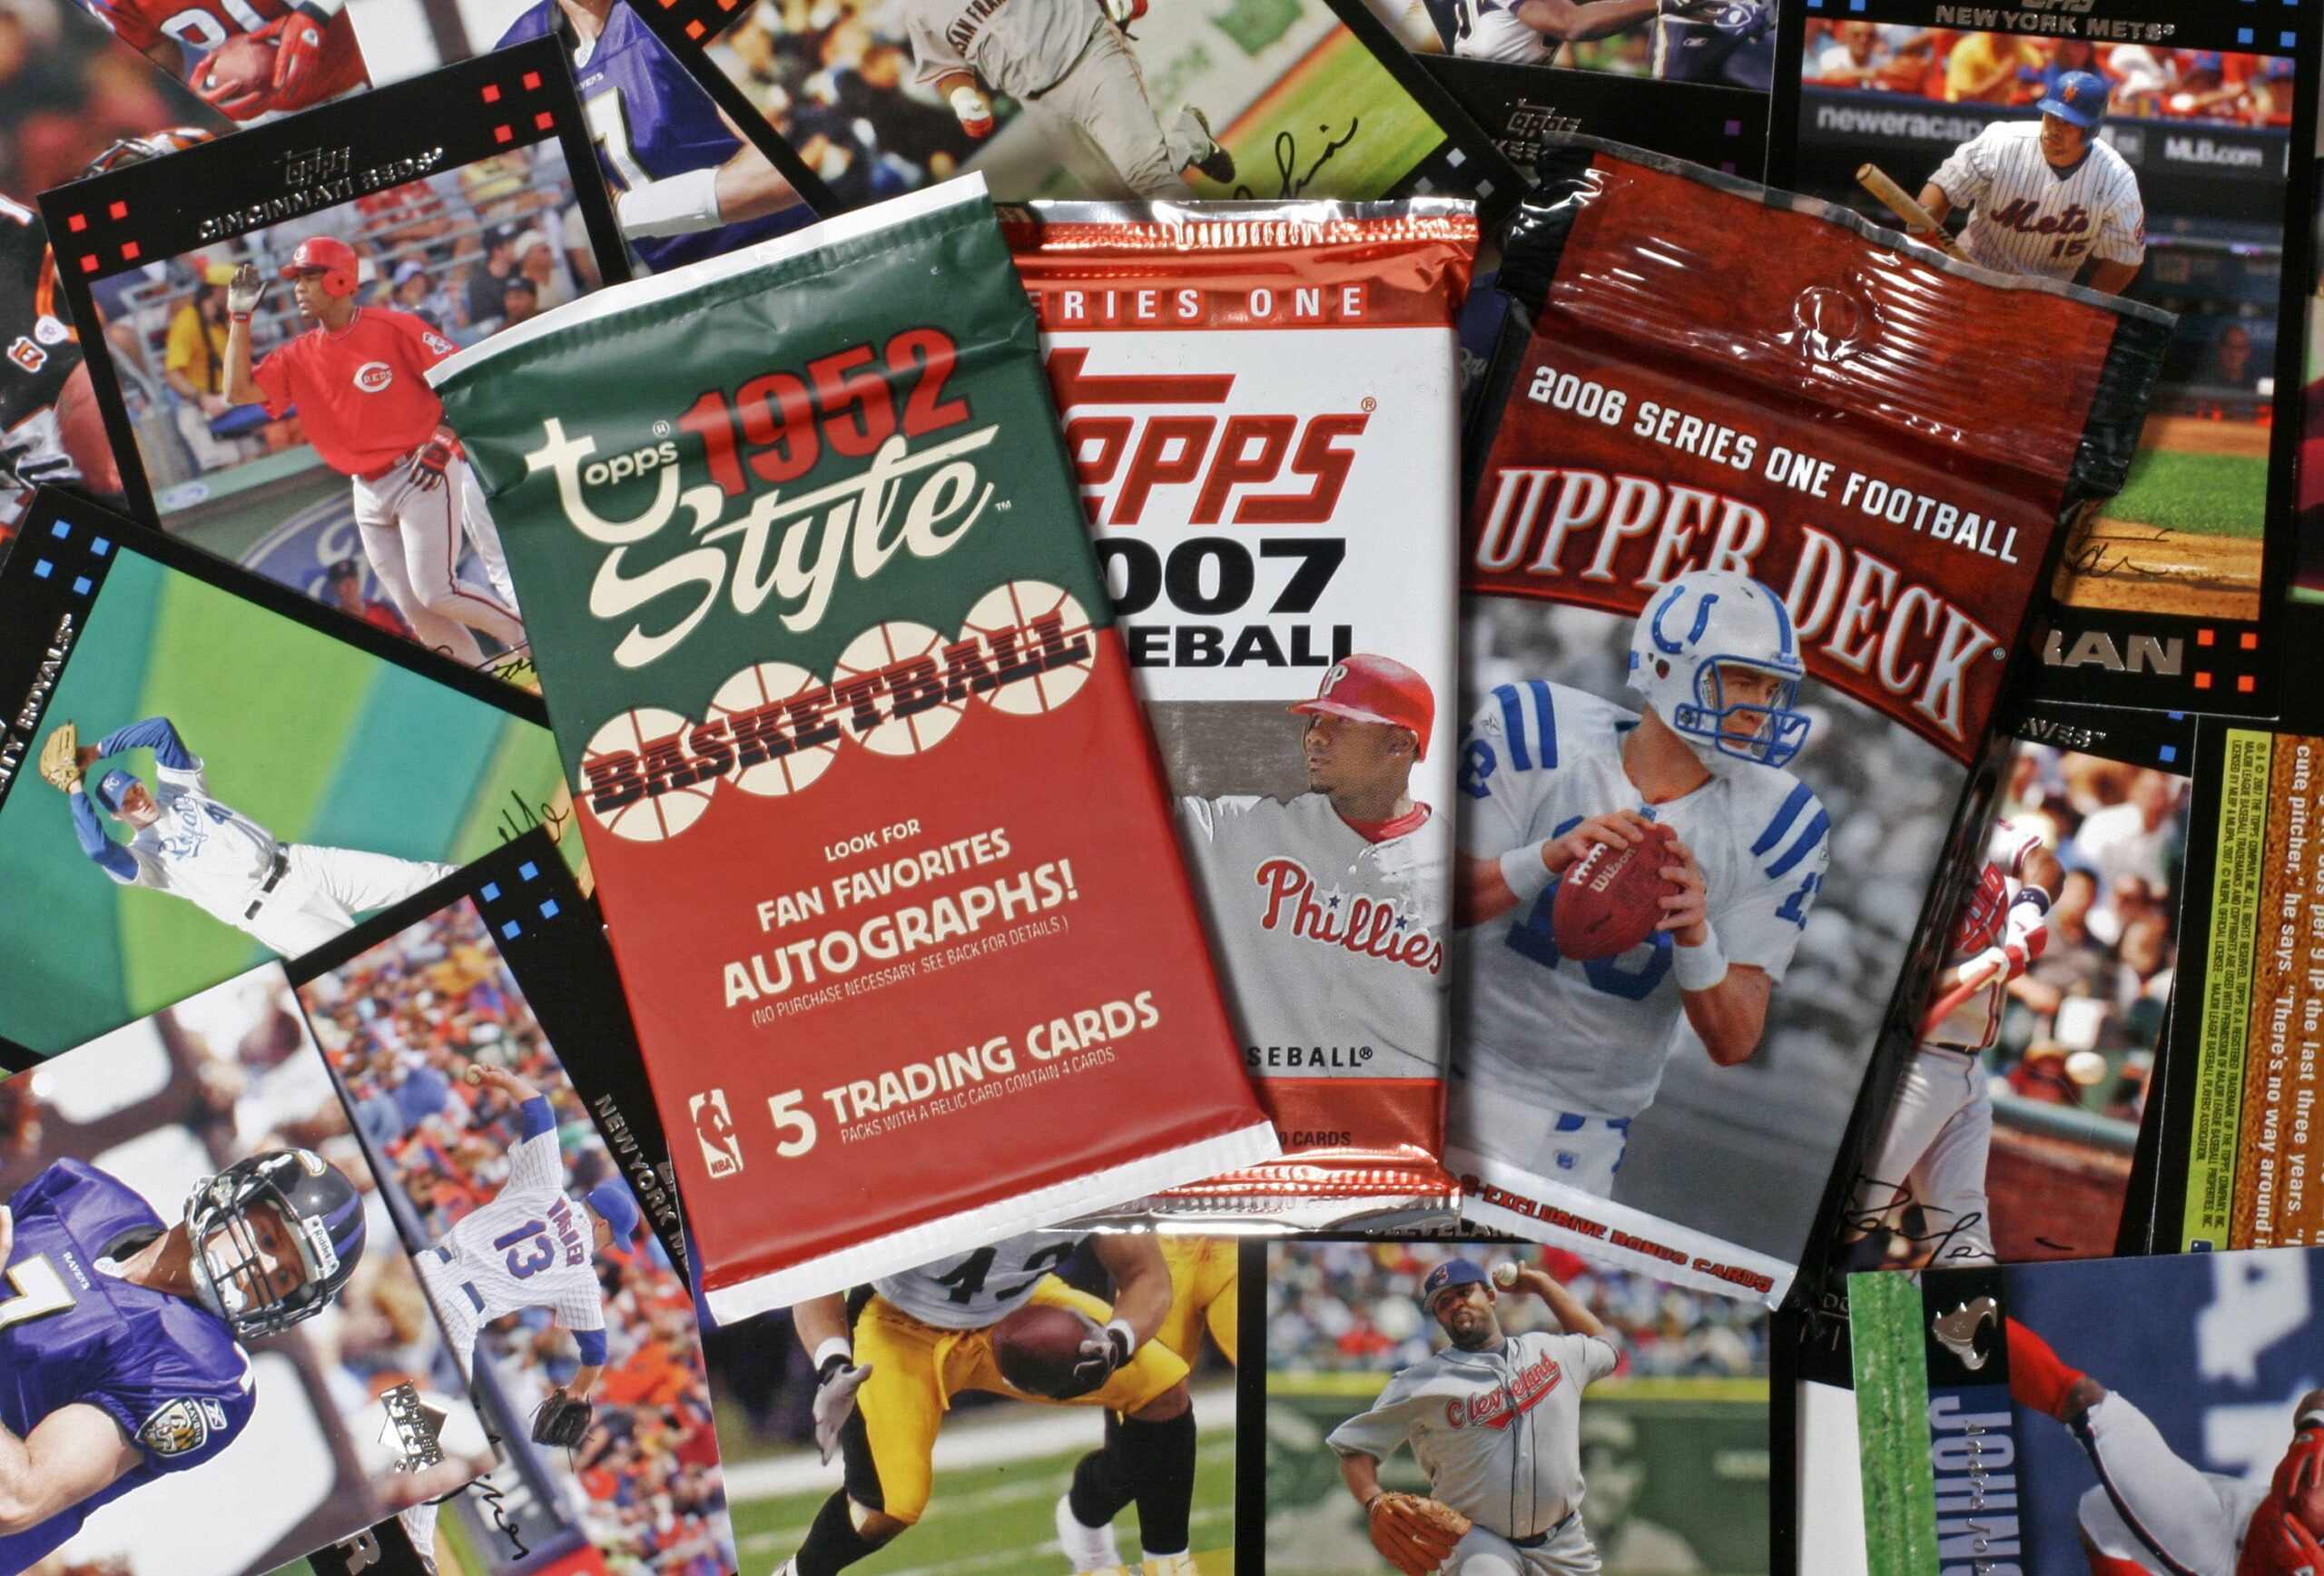 Baseball card firm Topps to go public by SPAC deal